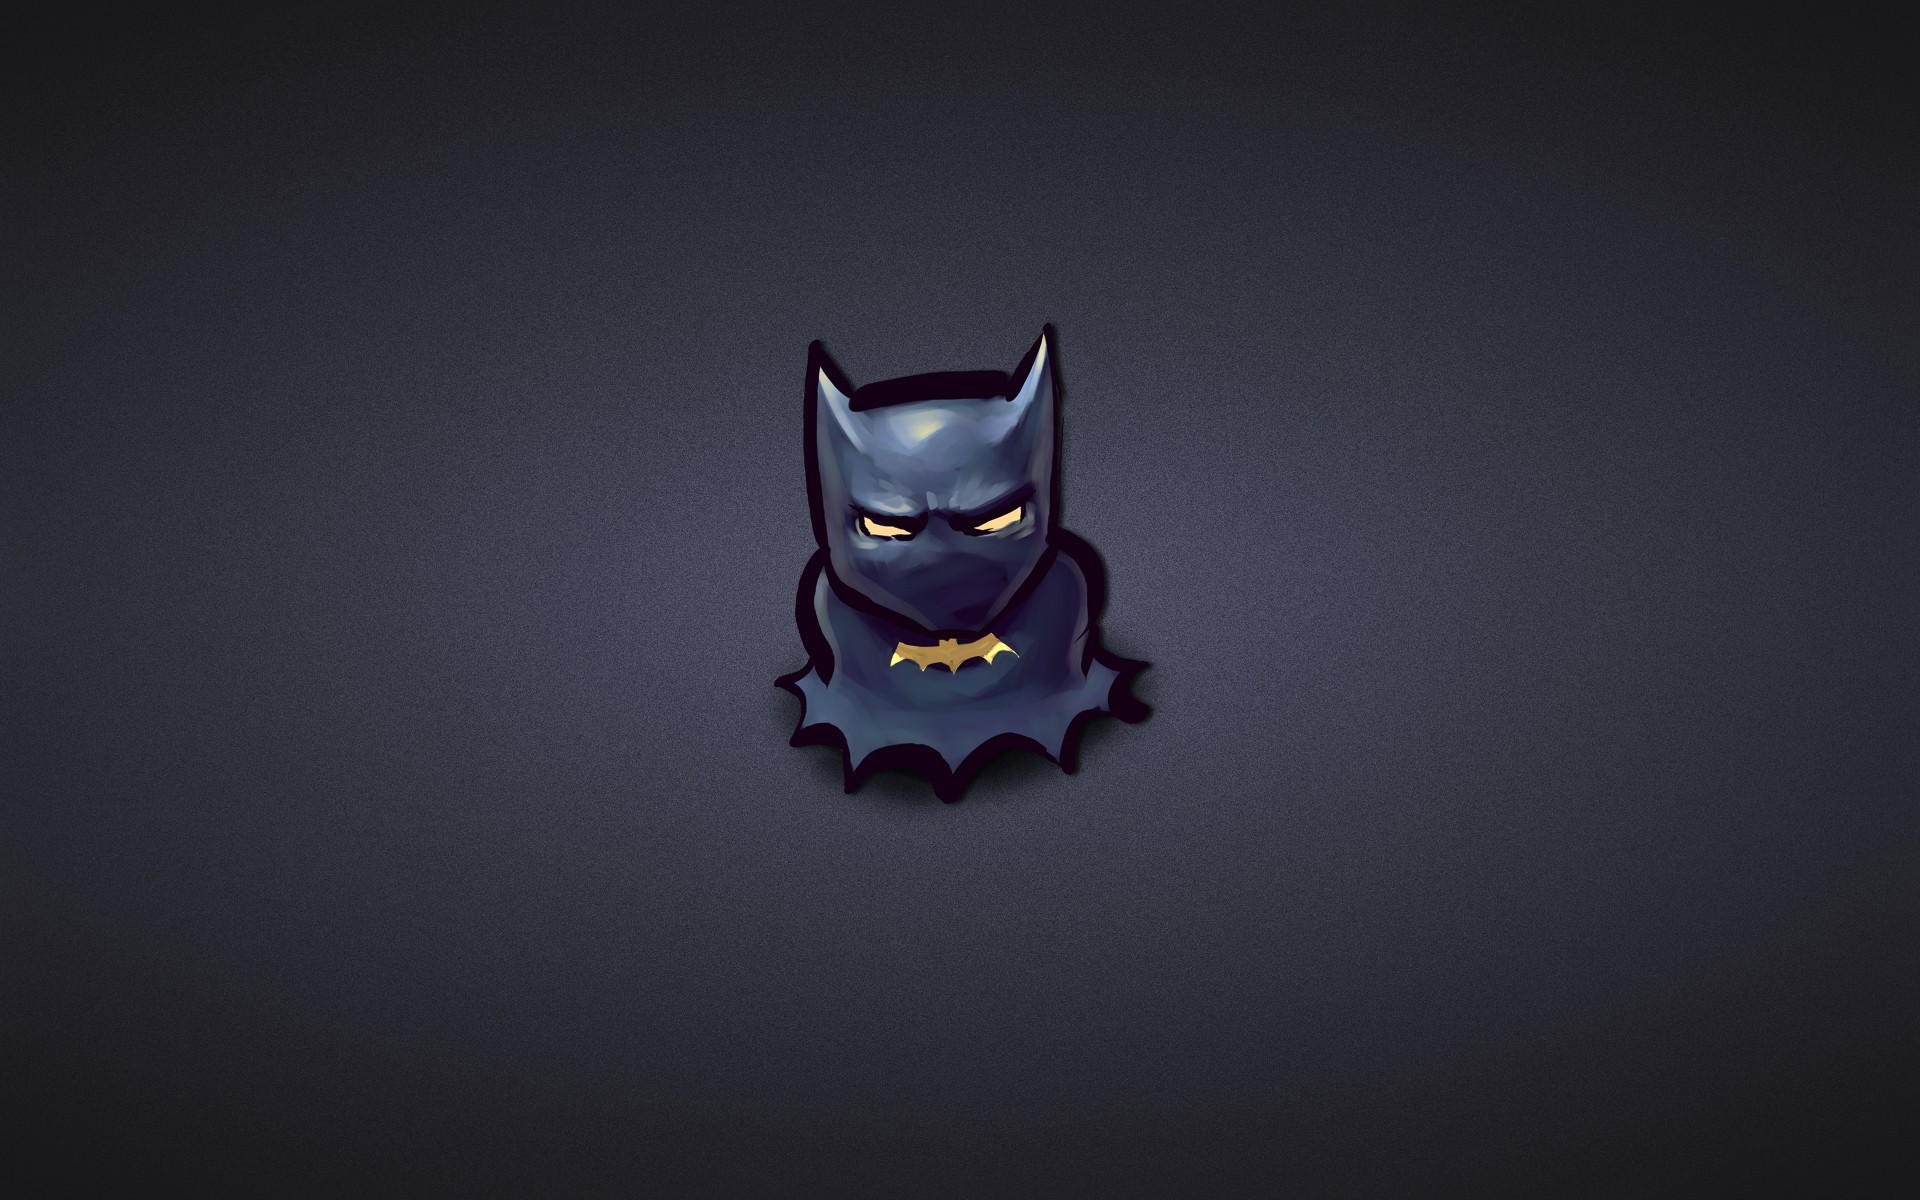 1920x1200 wallpaper Batman